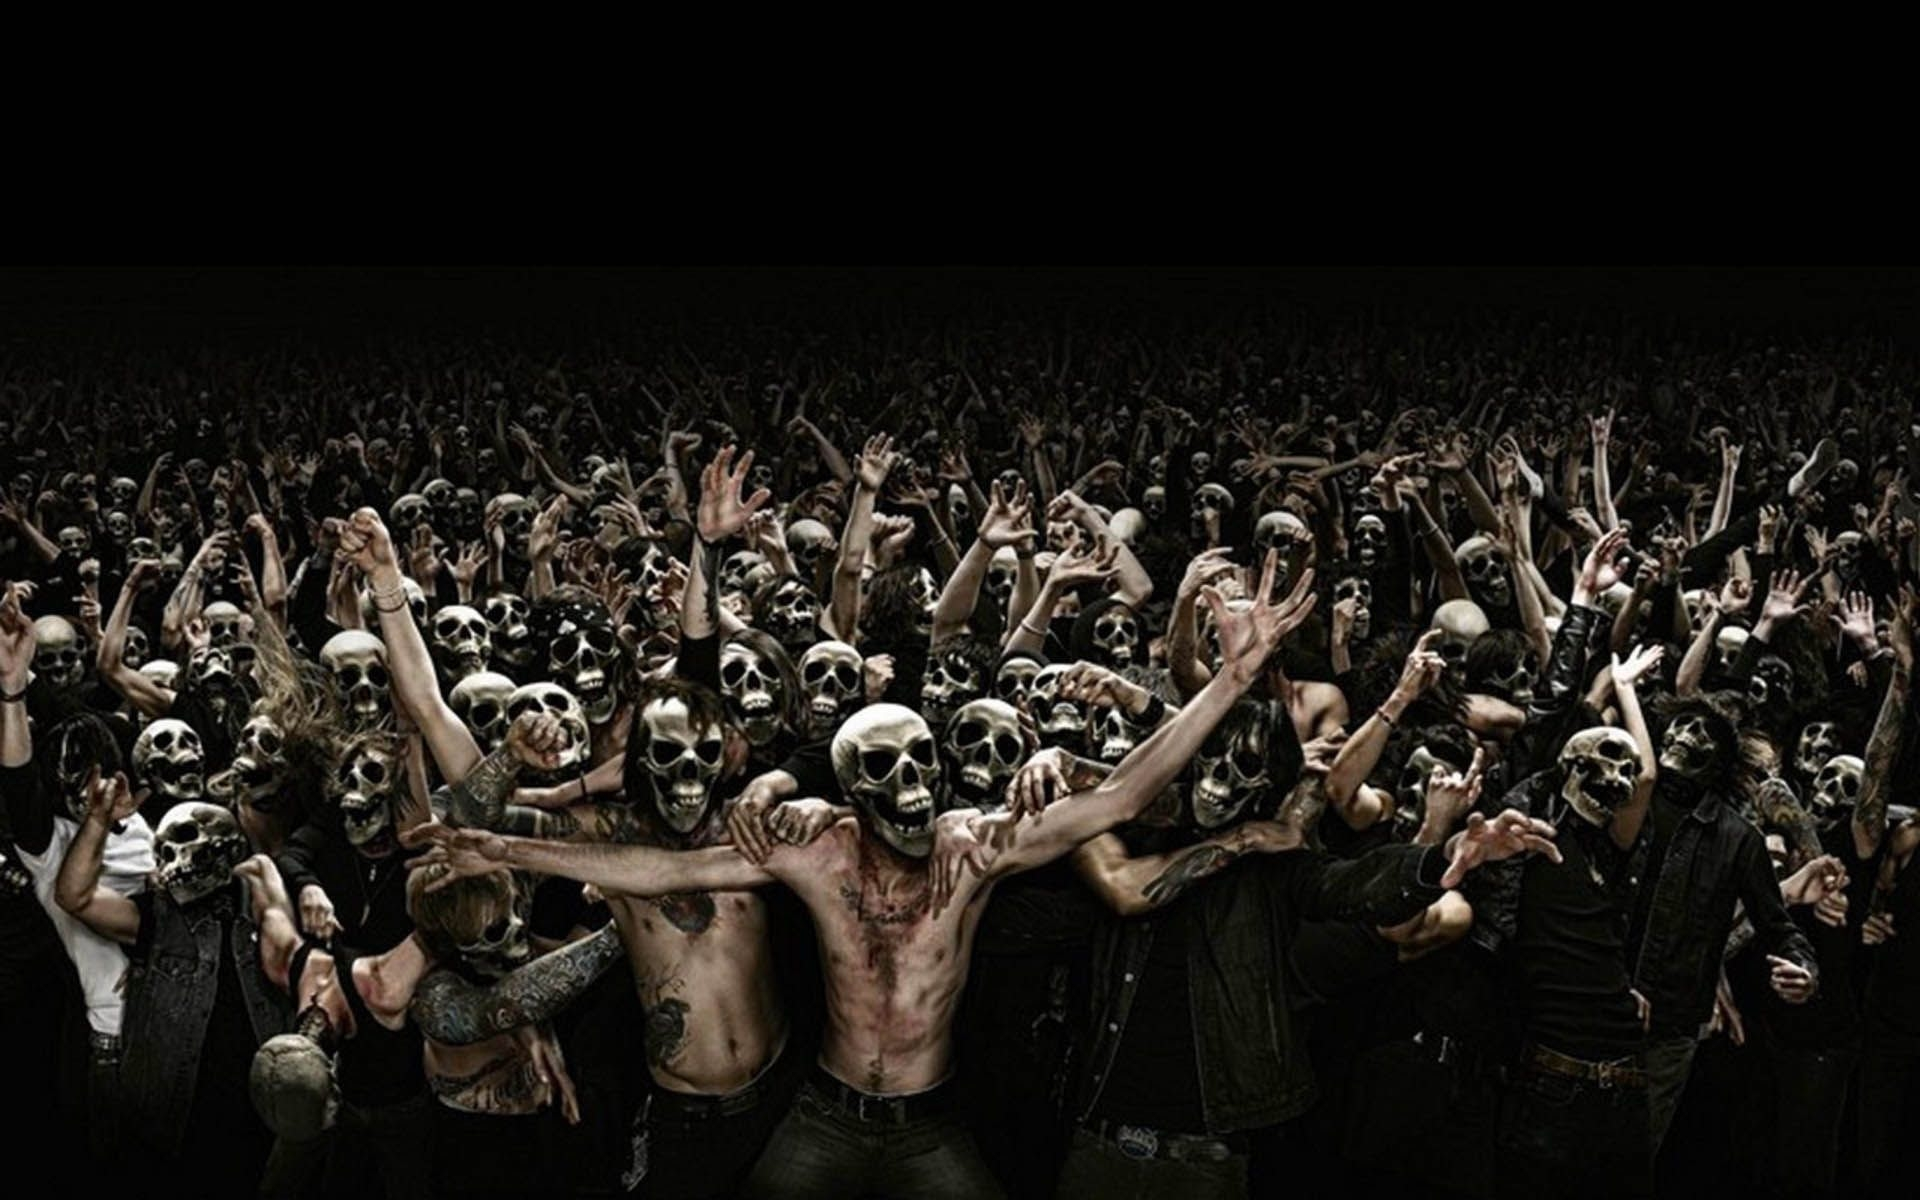 Crowd Of Skull Faces Pictures, Photos, and Images for Facebook, Tumblr ...